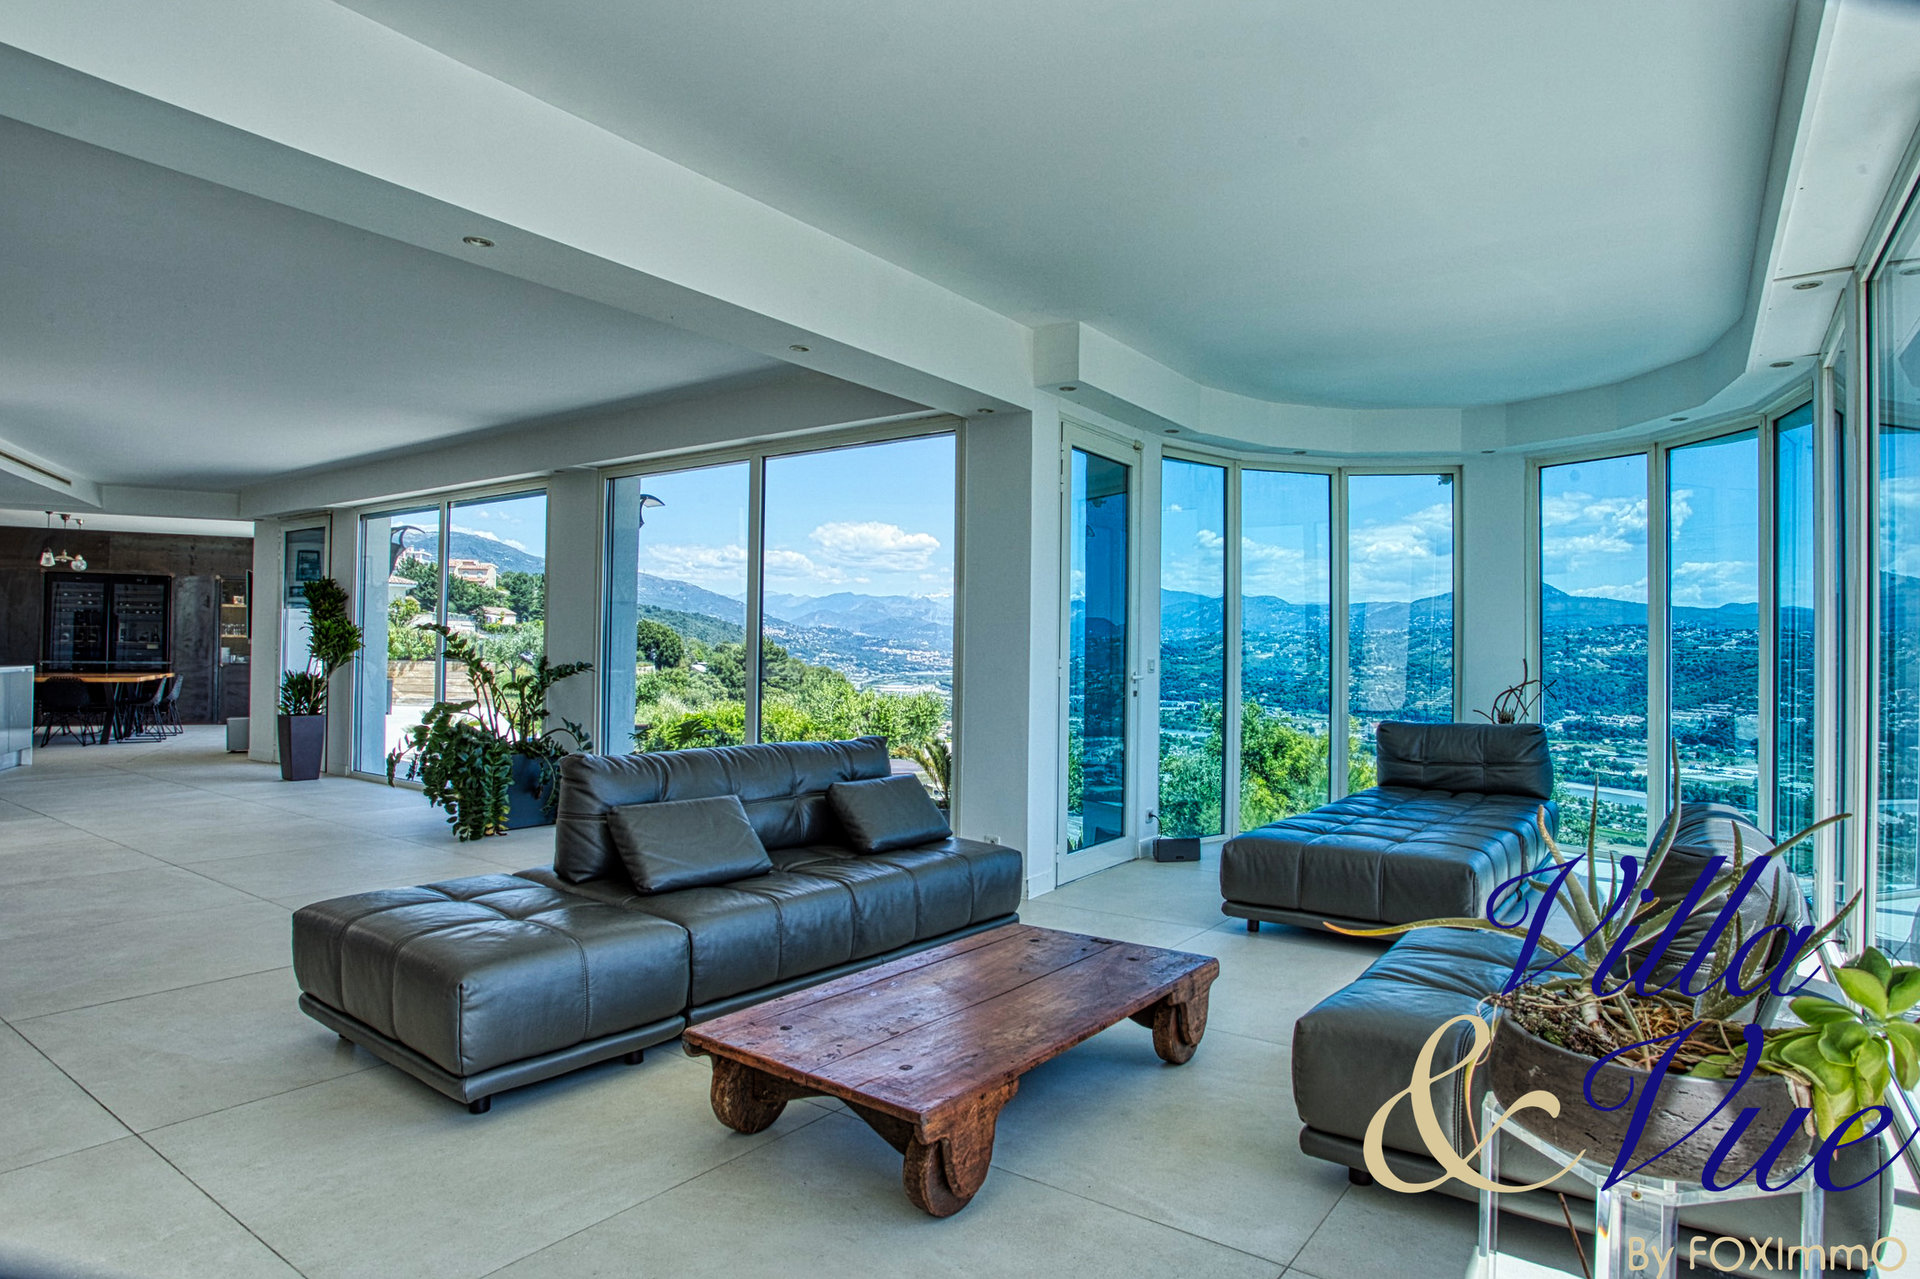 Saint Laurent du Var - Contemporary Villa Exception 300 m2